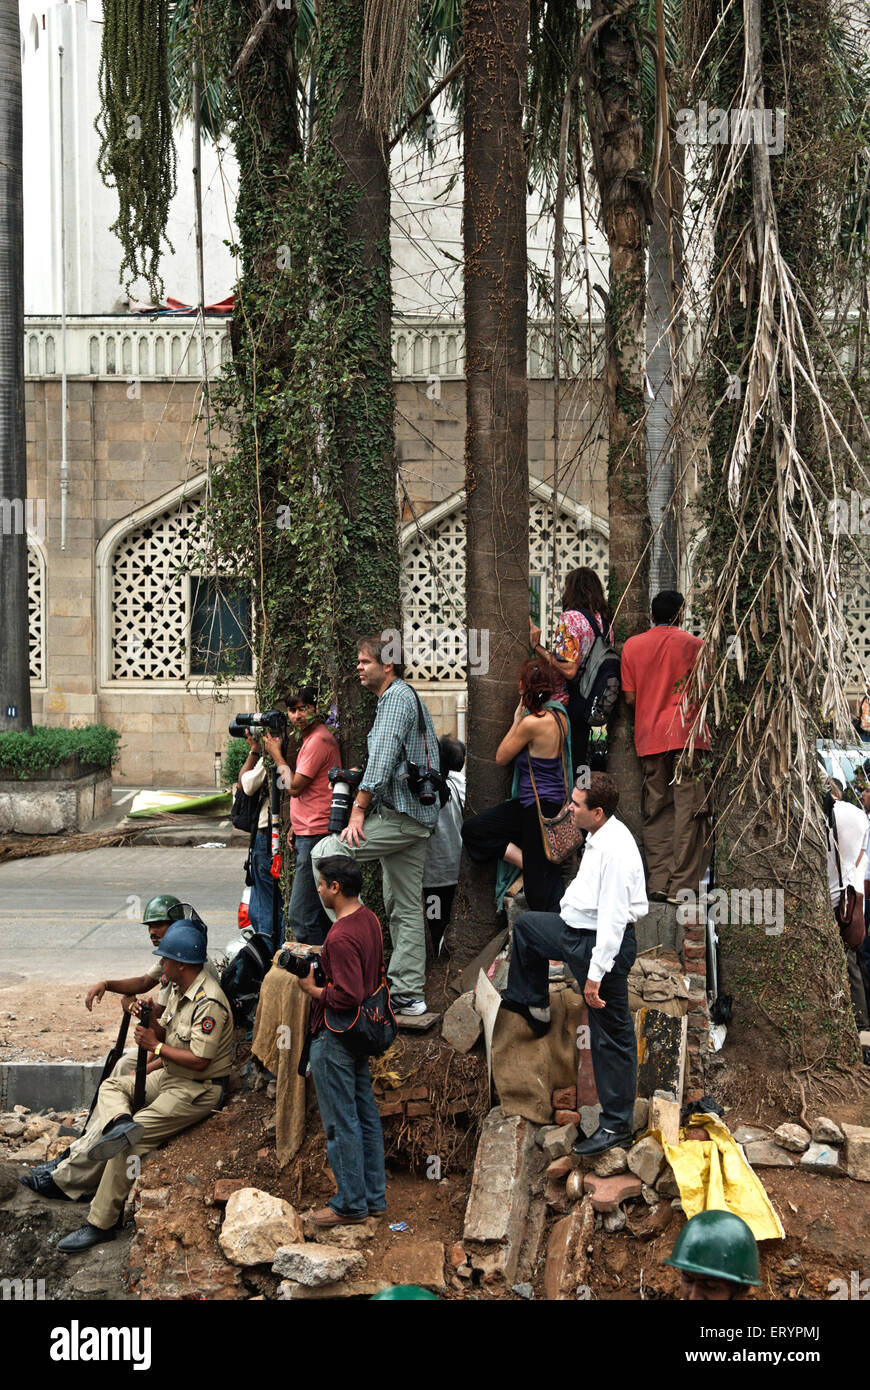 Journalists police and relatives of hostages outside Taj Mahal hotel after terrorist attack by deccan mujahedeen - Stock Image